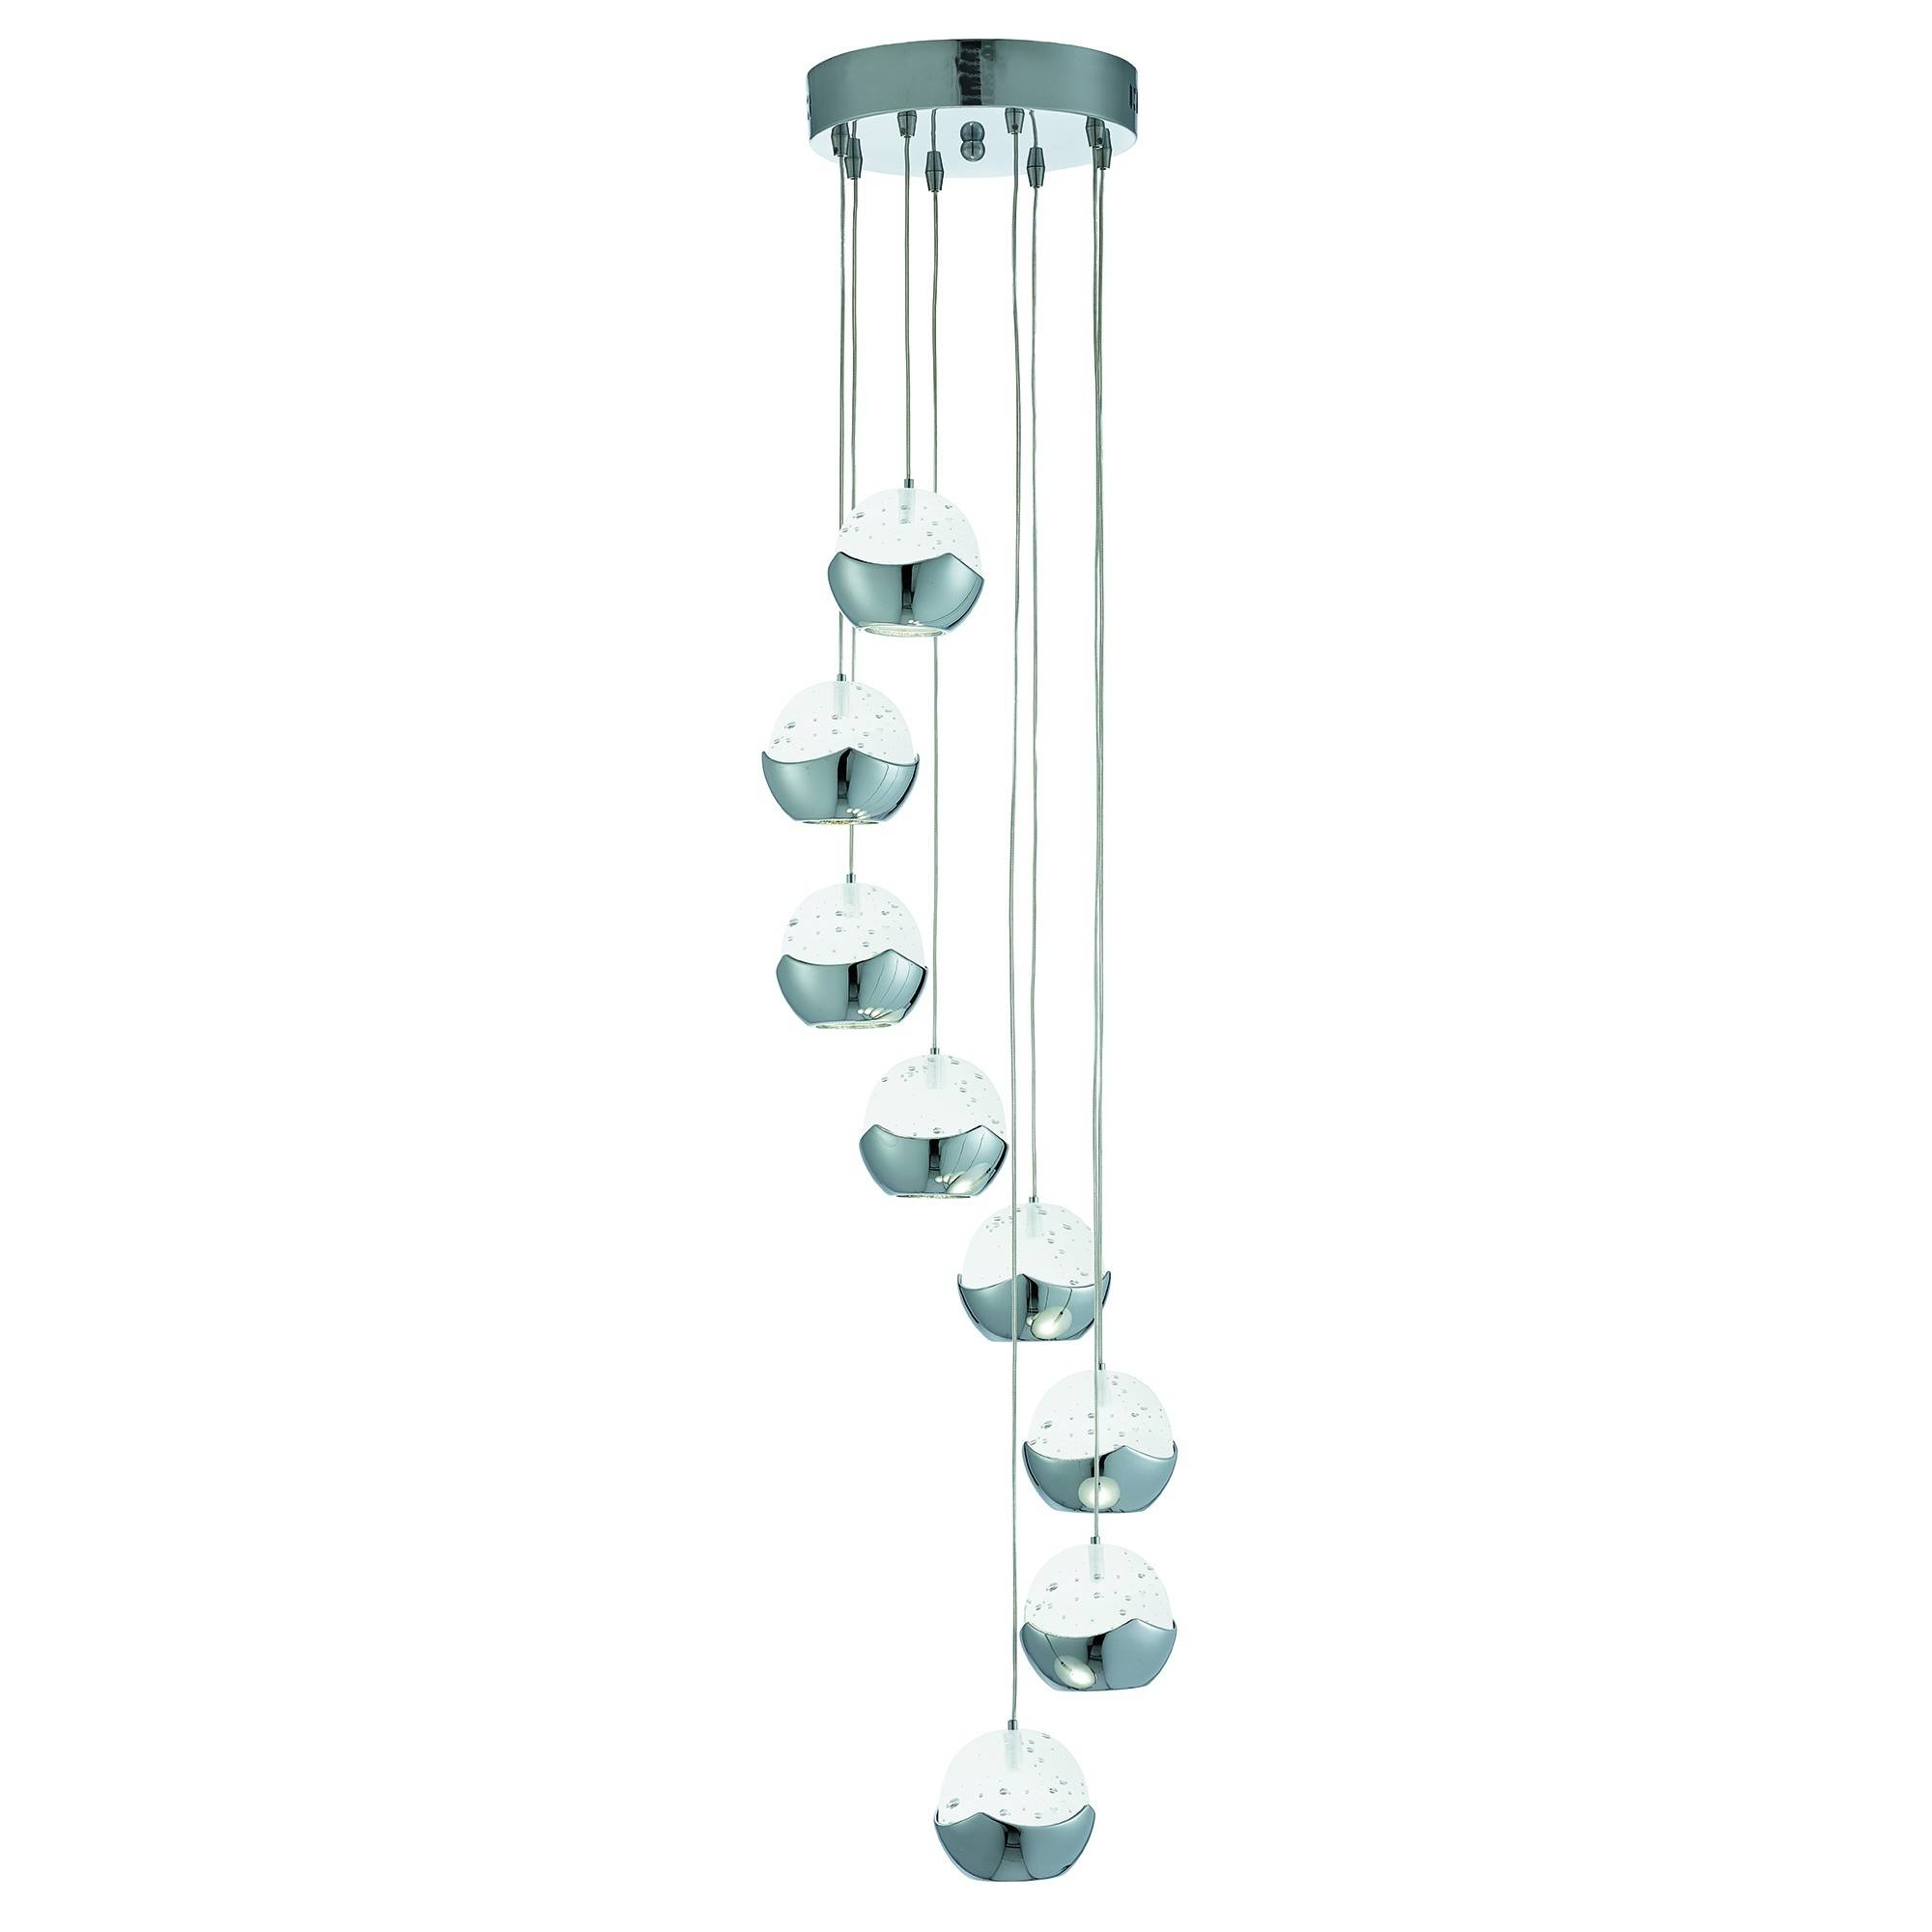 28+ [ Glass 8 Light Pendant ] | 6111Ch Prisma 8 Light Pendant In in Paxton Glass 8 Light Pendants (Image 1 of 15)